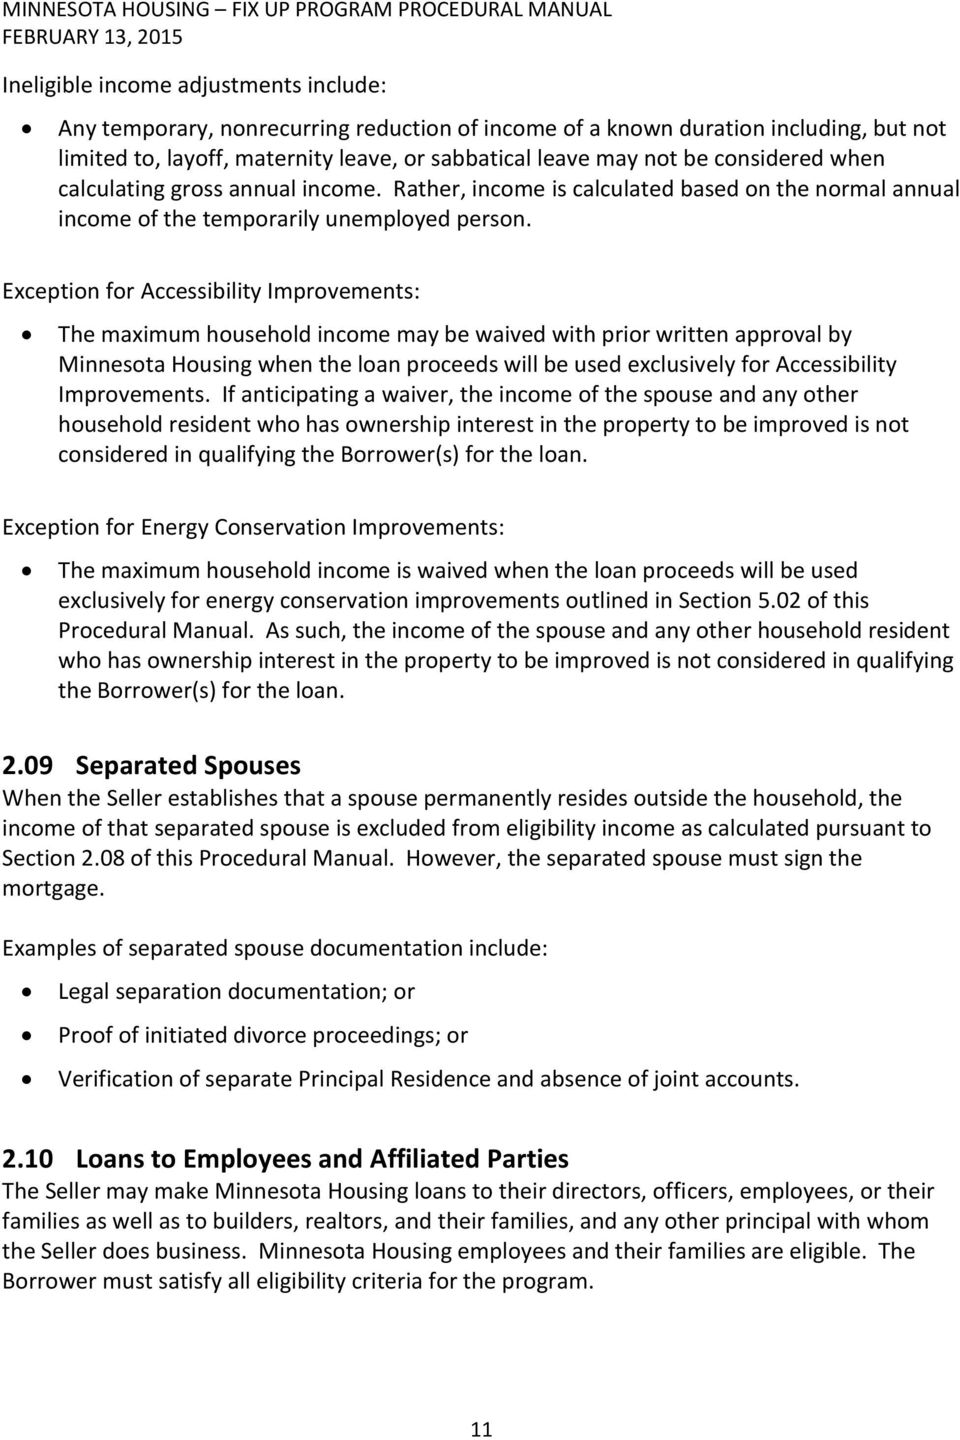 Exception for Accessibility Improvements: The maximum household income may be waived with prior written approval by Minnesota Housing when the loan proceeds will be used exclusively for Accessibility